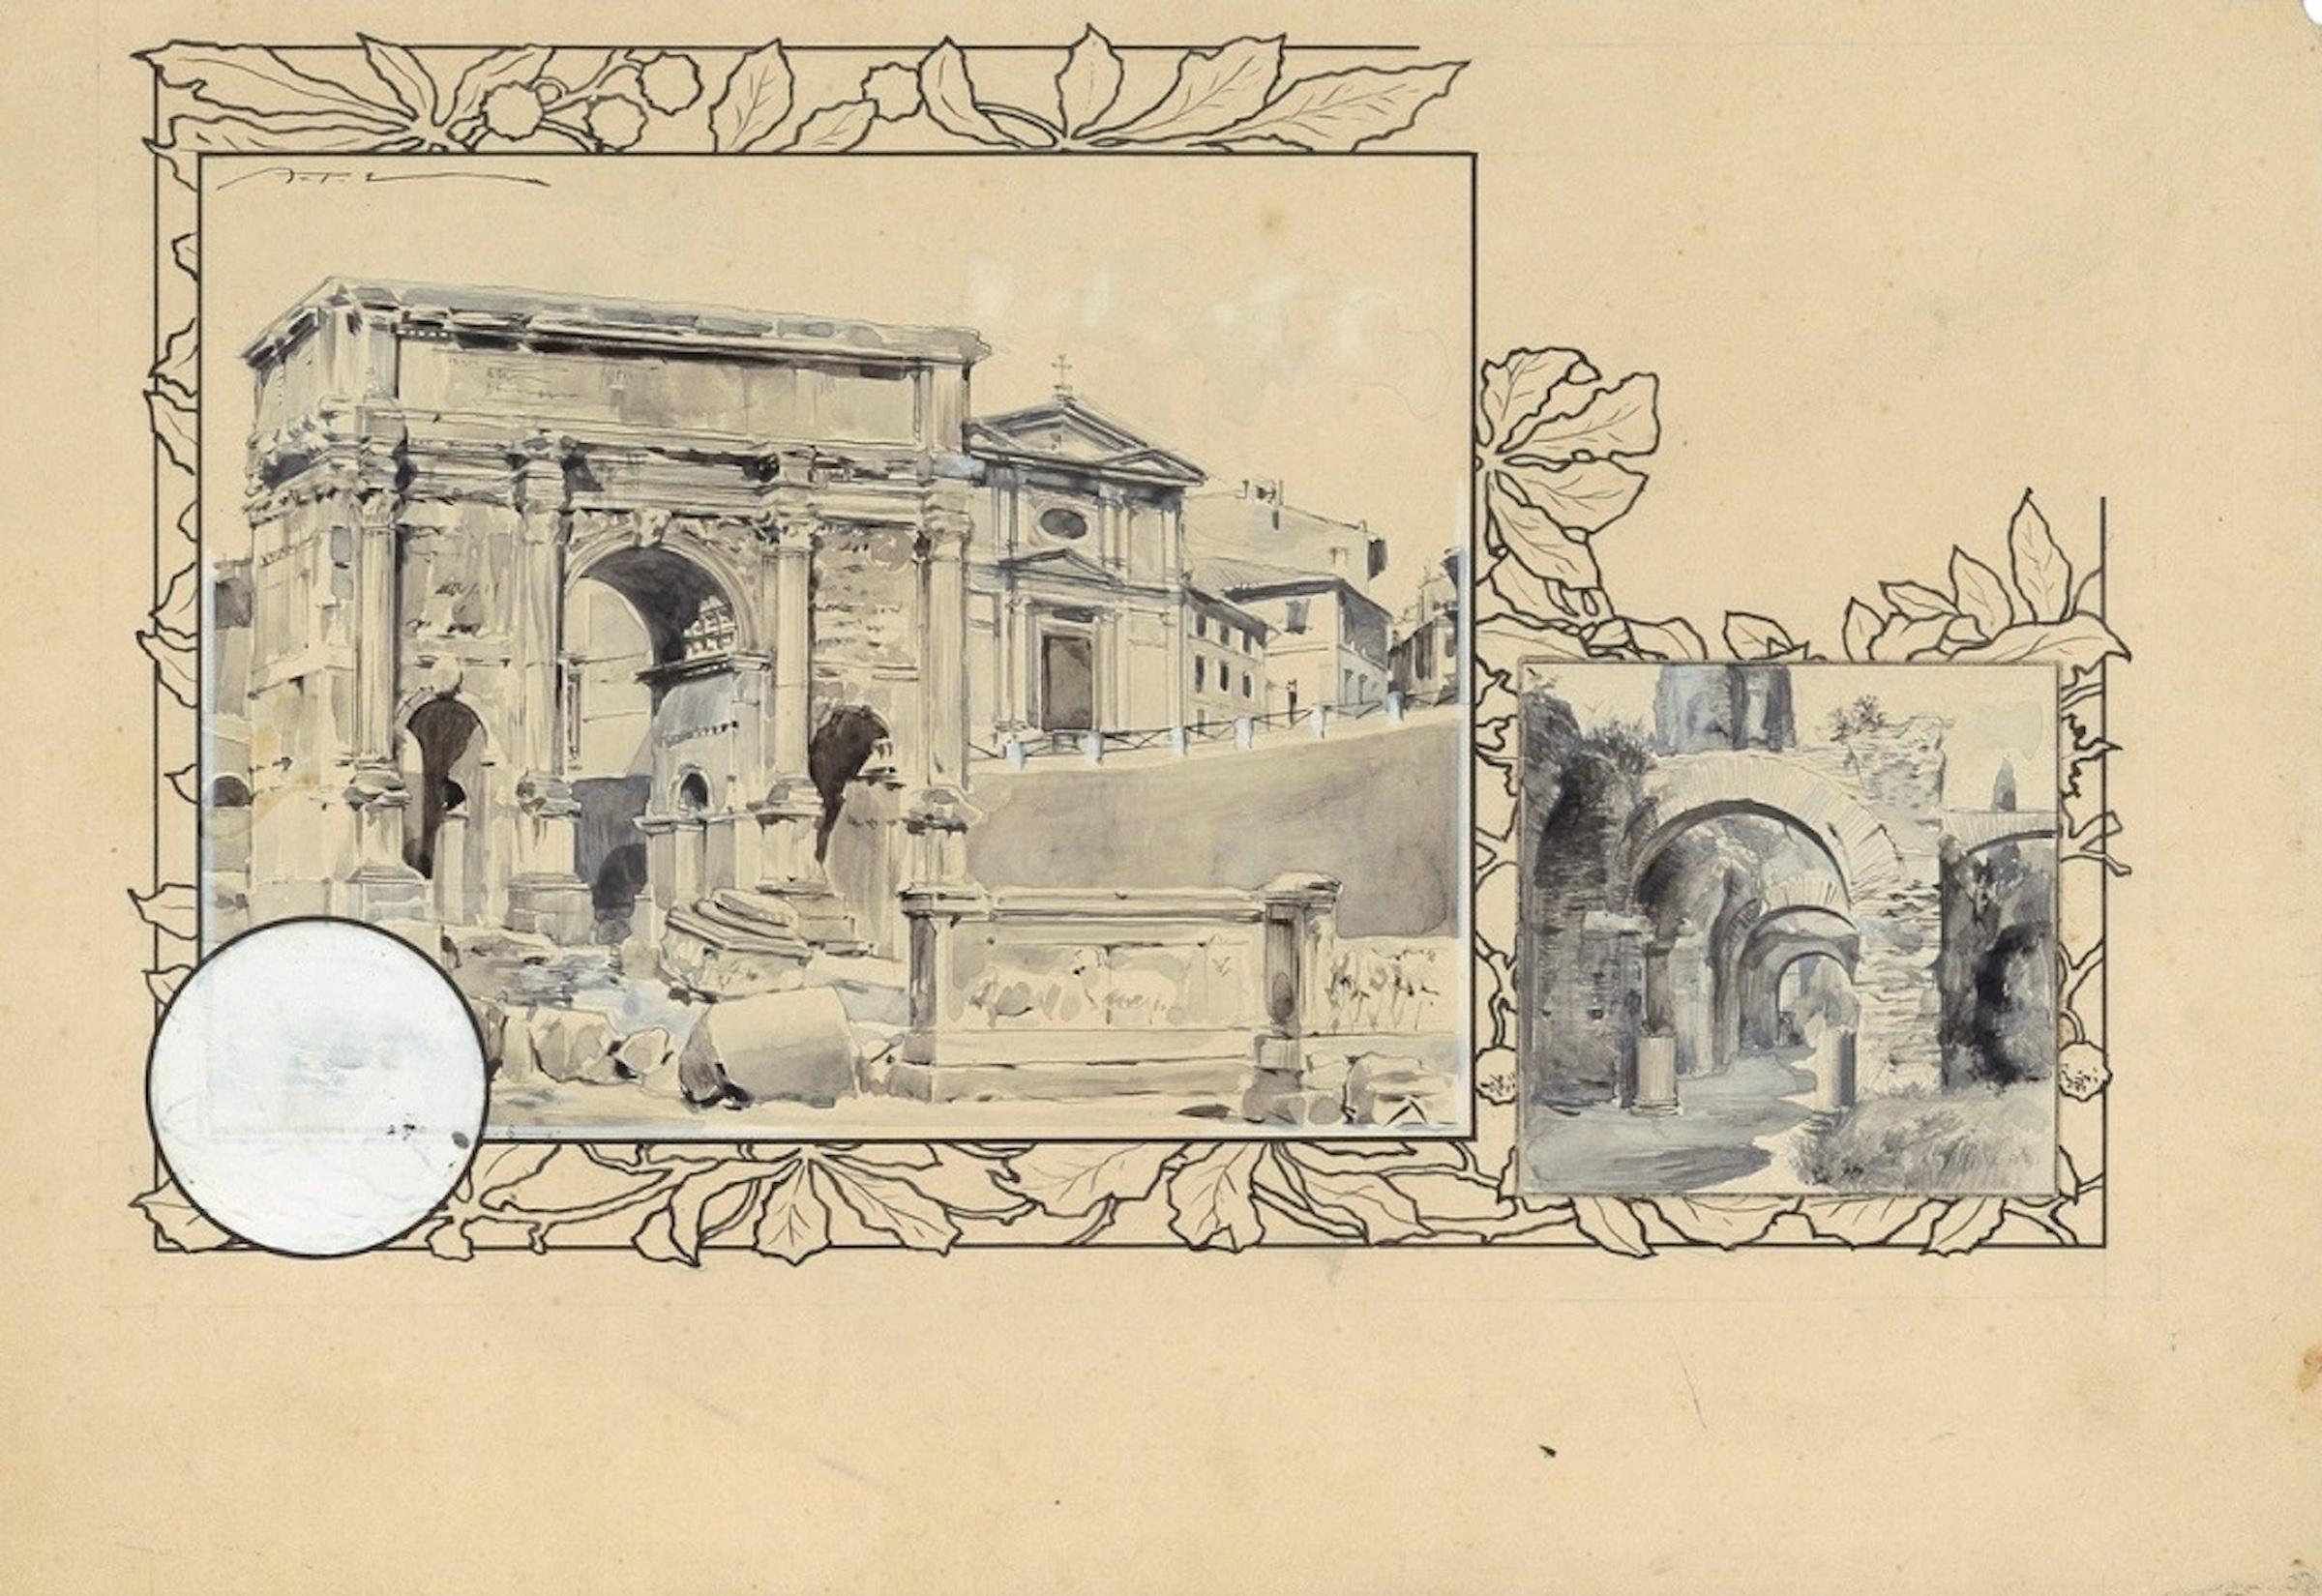 Settimio Severo Triumphal Arch - Original China Ink Drawing by A. Terzi - 1899